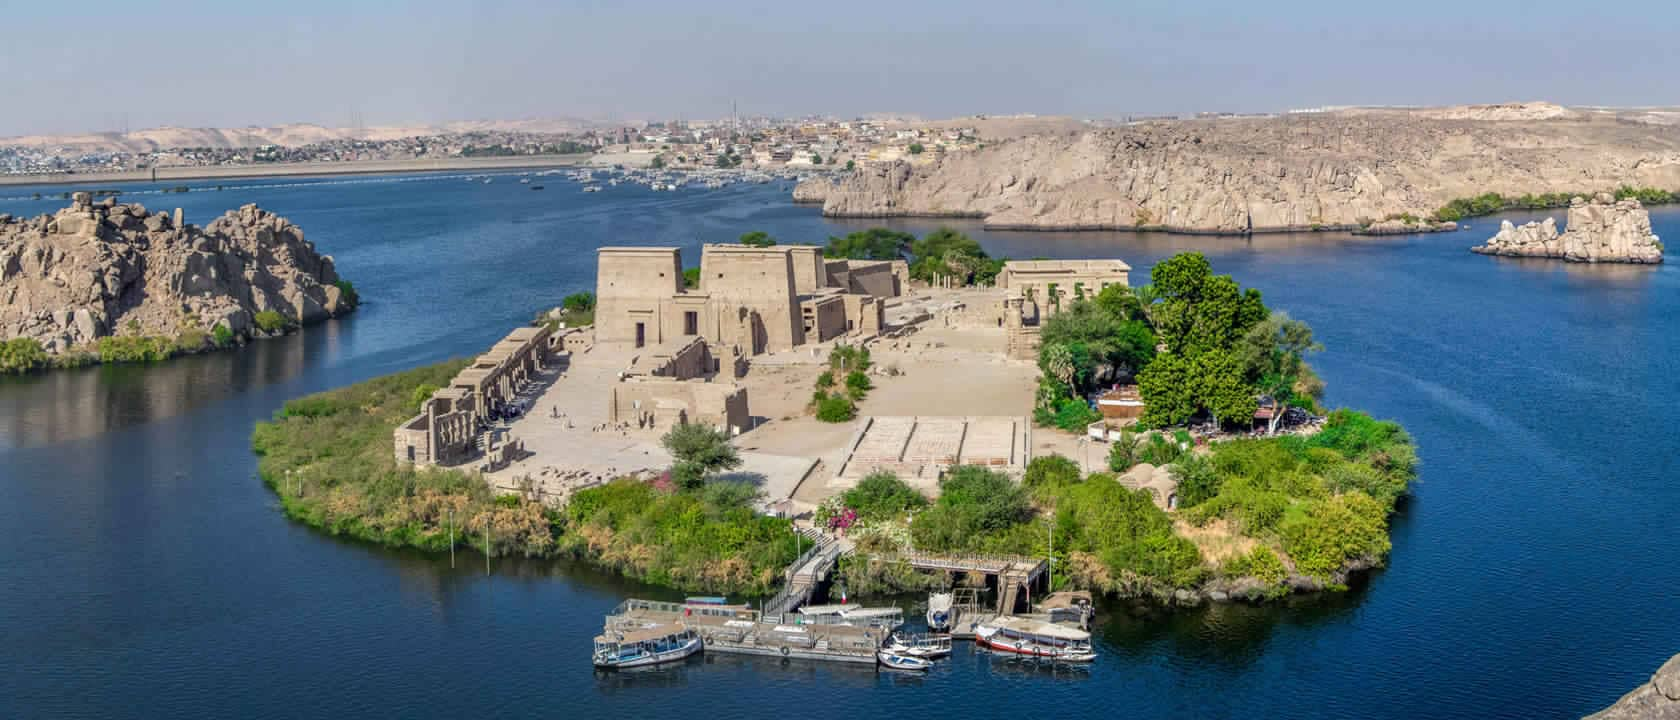 best of egypt tours philae isalnd, Treasures of Egypt Tour-The Best Way to Plan & Book Your Family Vacation to Egypt. Inquire Now & Get Free Quote